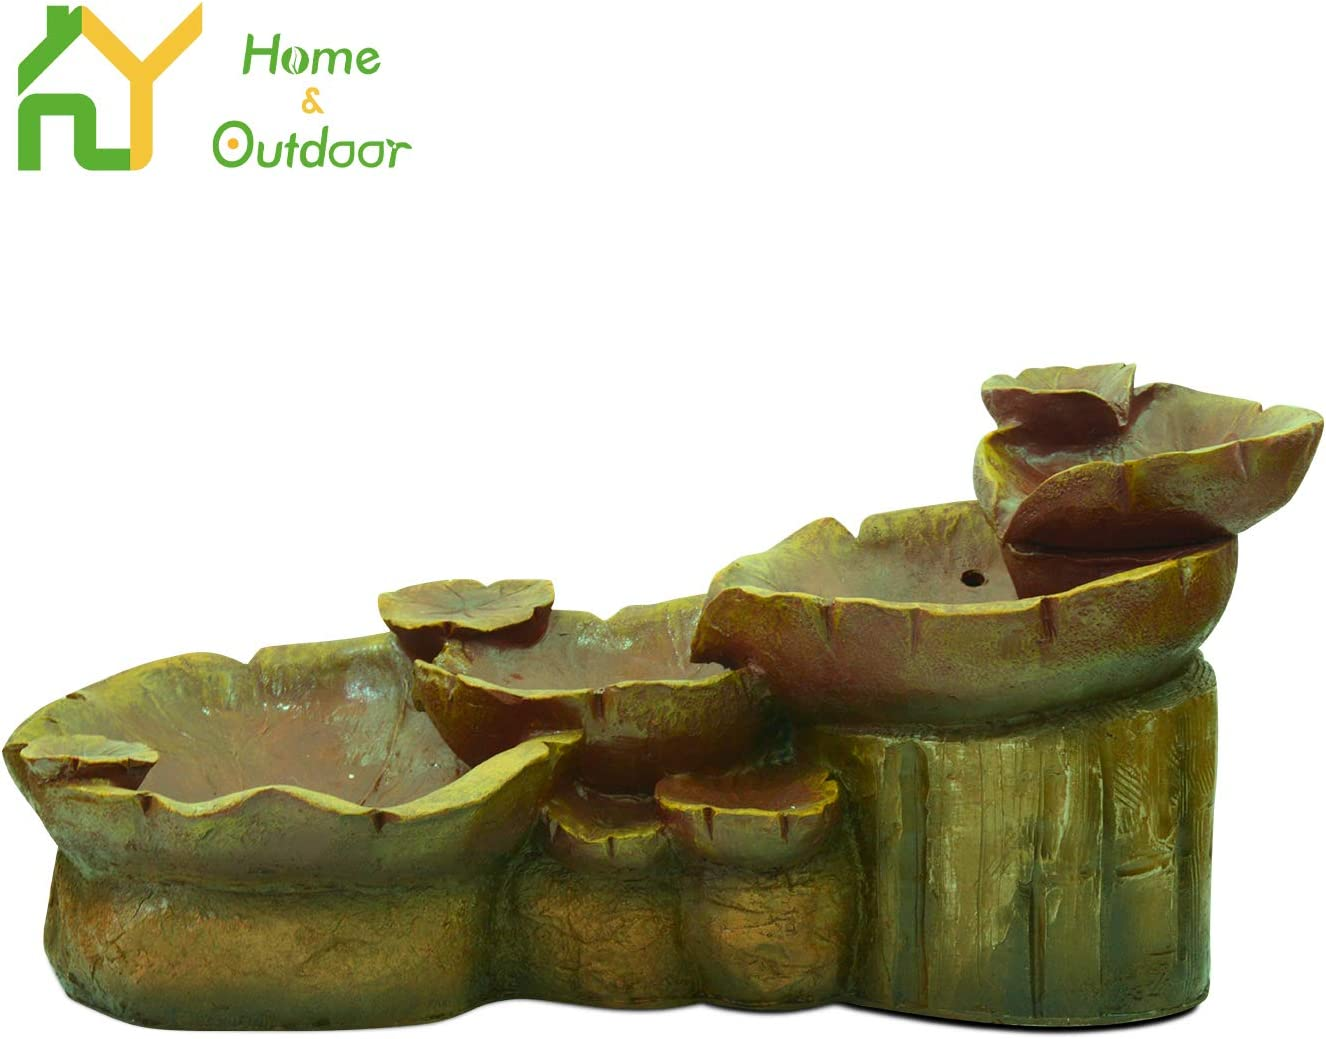 Indoor Oudoor Waterfall Feature with LED Lights /& Pump Decorative Fountain for Stress Relief S.Y Water Fountain Cascading Resin-Rock Tabletop Fountain 38 x 19 x 18 inches